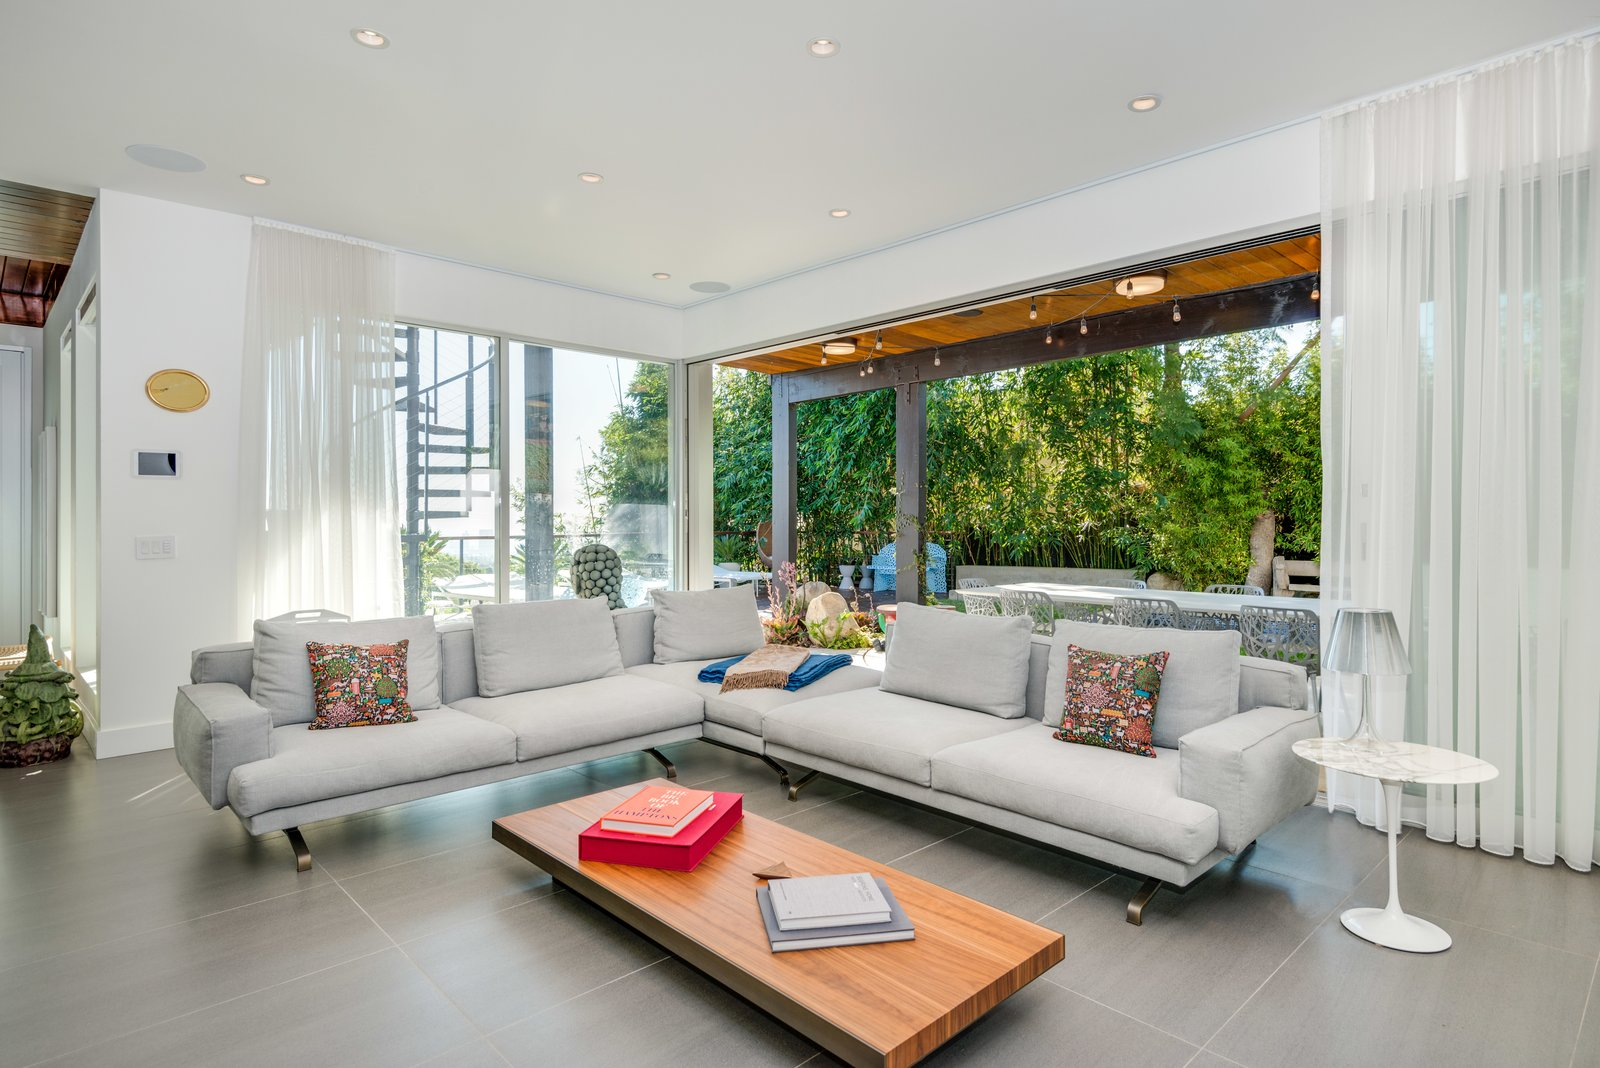 Living, Slate, Coffee Tables, Table, Sectional, End Tables, and Recessed The den opens up to the pool area.  Living Table Sectional Recessed Slate Photos from A Renovated Harry Gesner–Designed Midcentury in L.A. Wants $9.4M